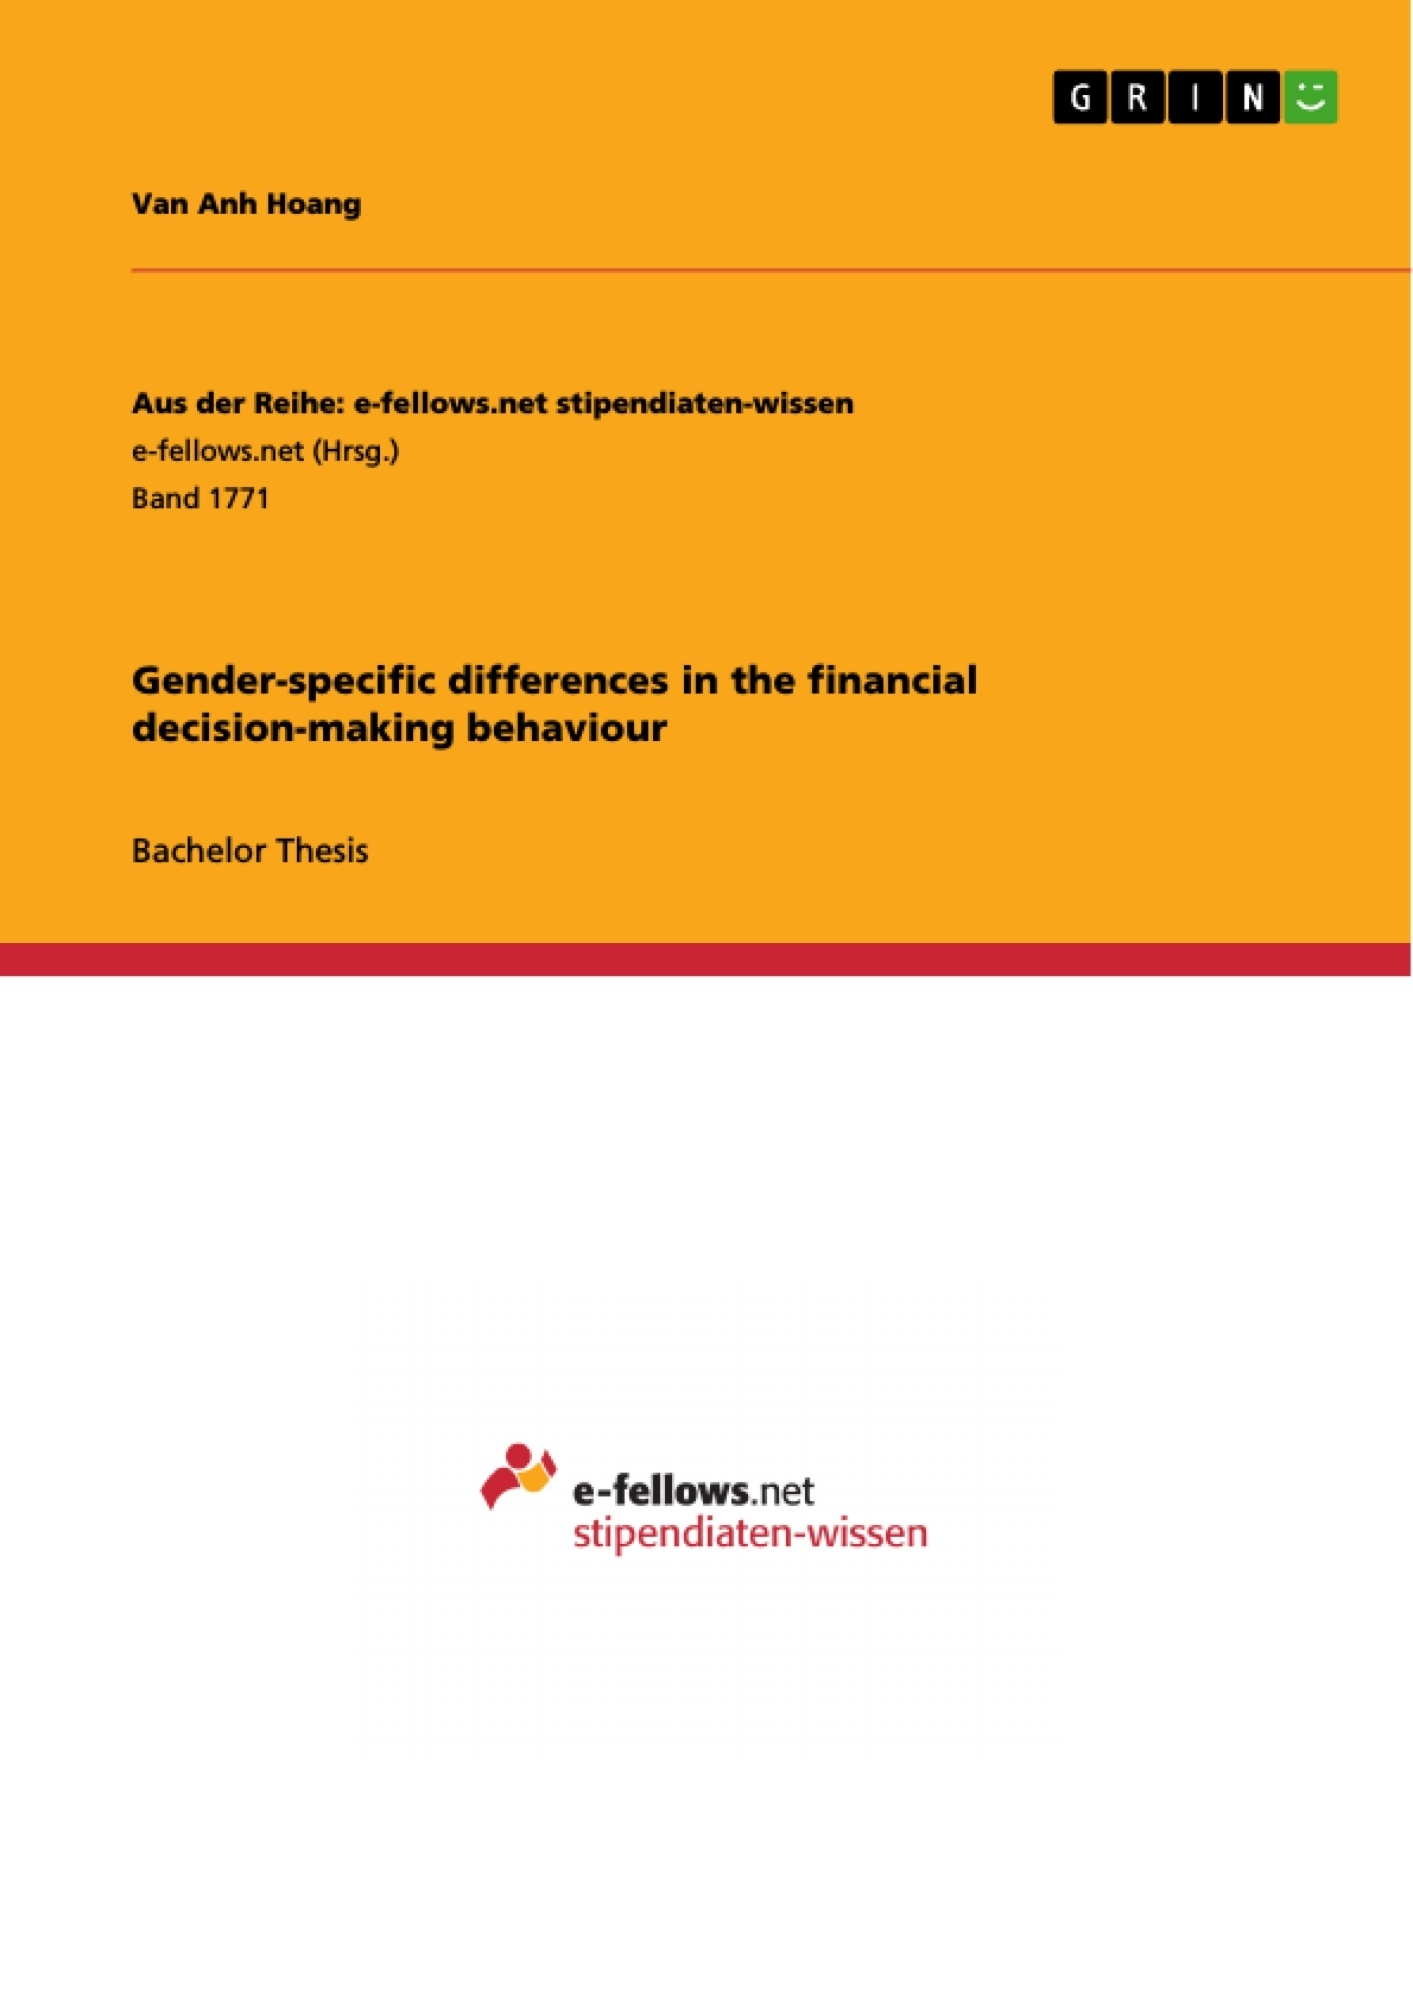 Title: Gender-specific differences in the financial decision-making behaviour